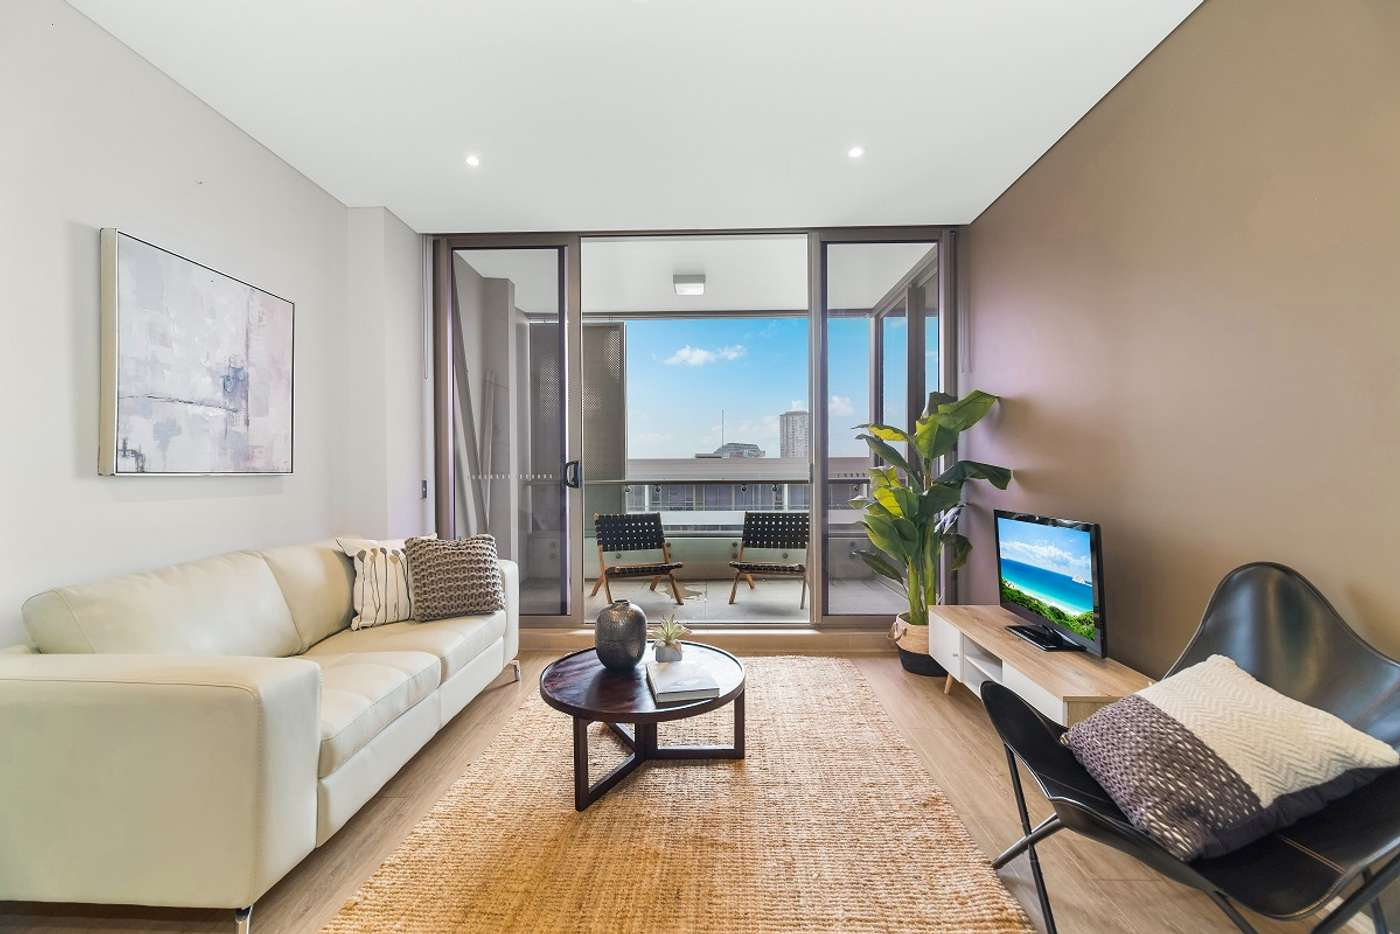 Main view of Homely apartment listing, 941/12 Victoria Park Parade, Zetland NSW 2017